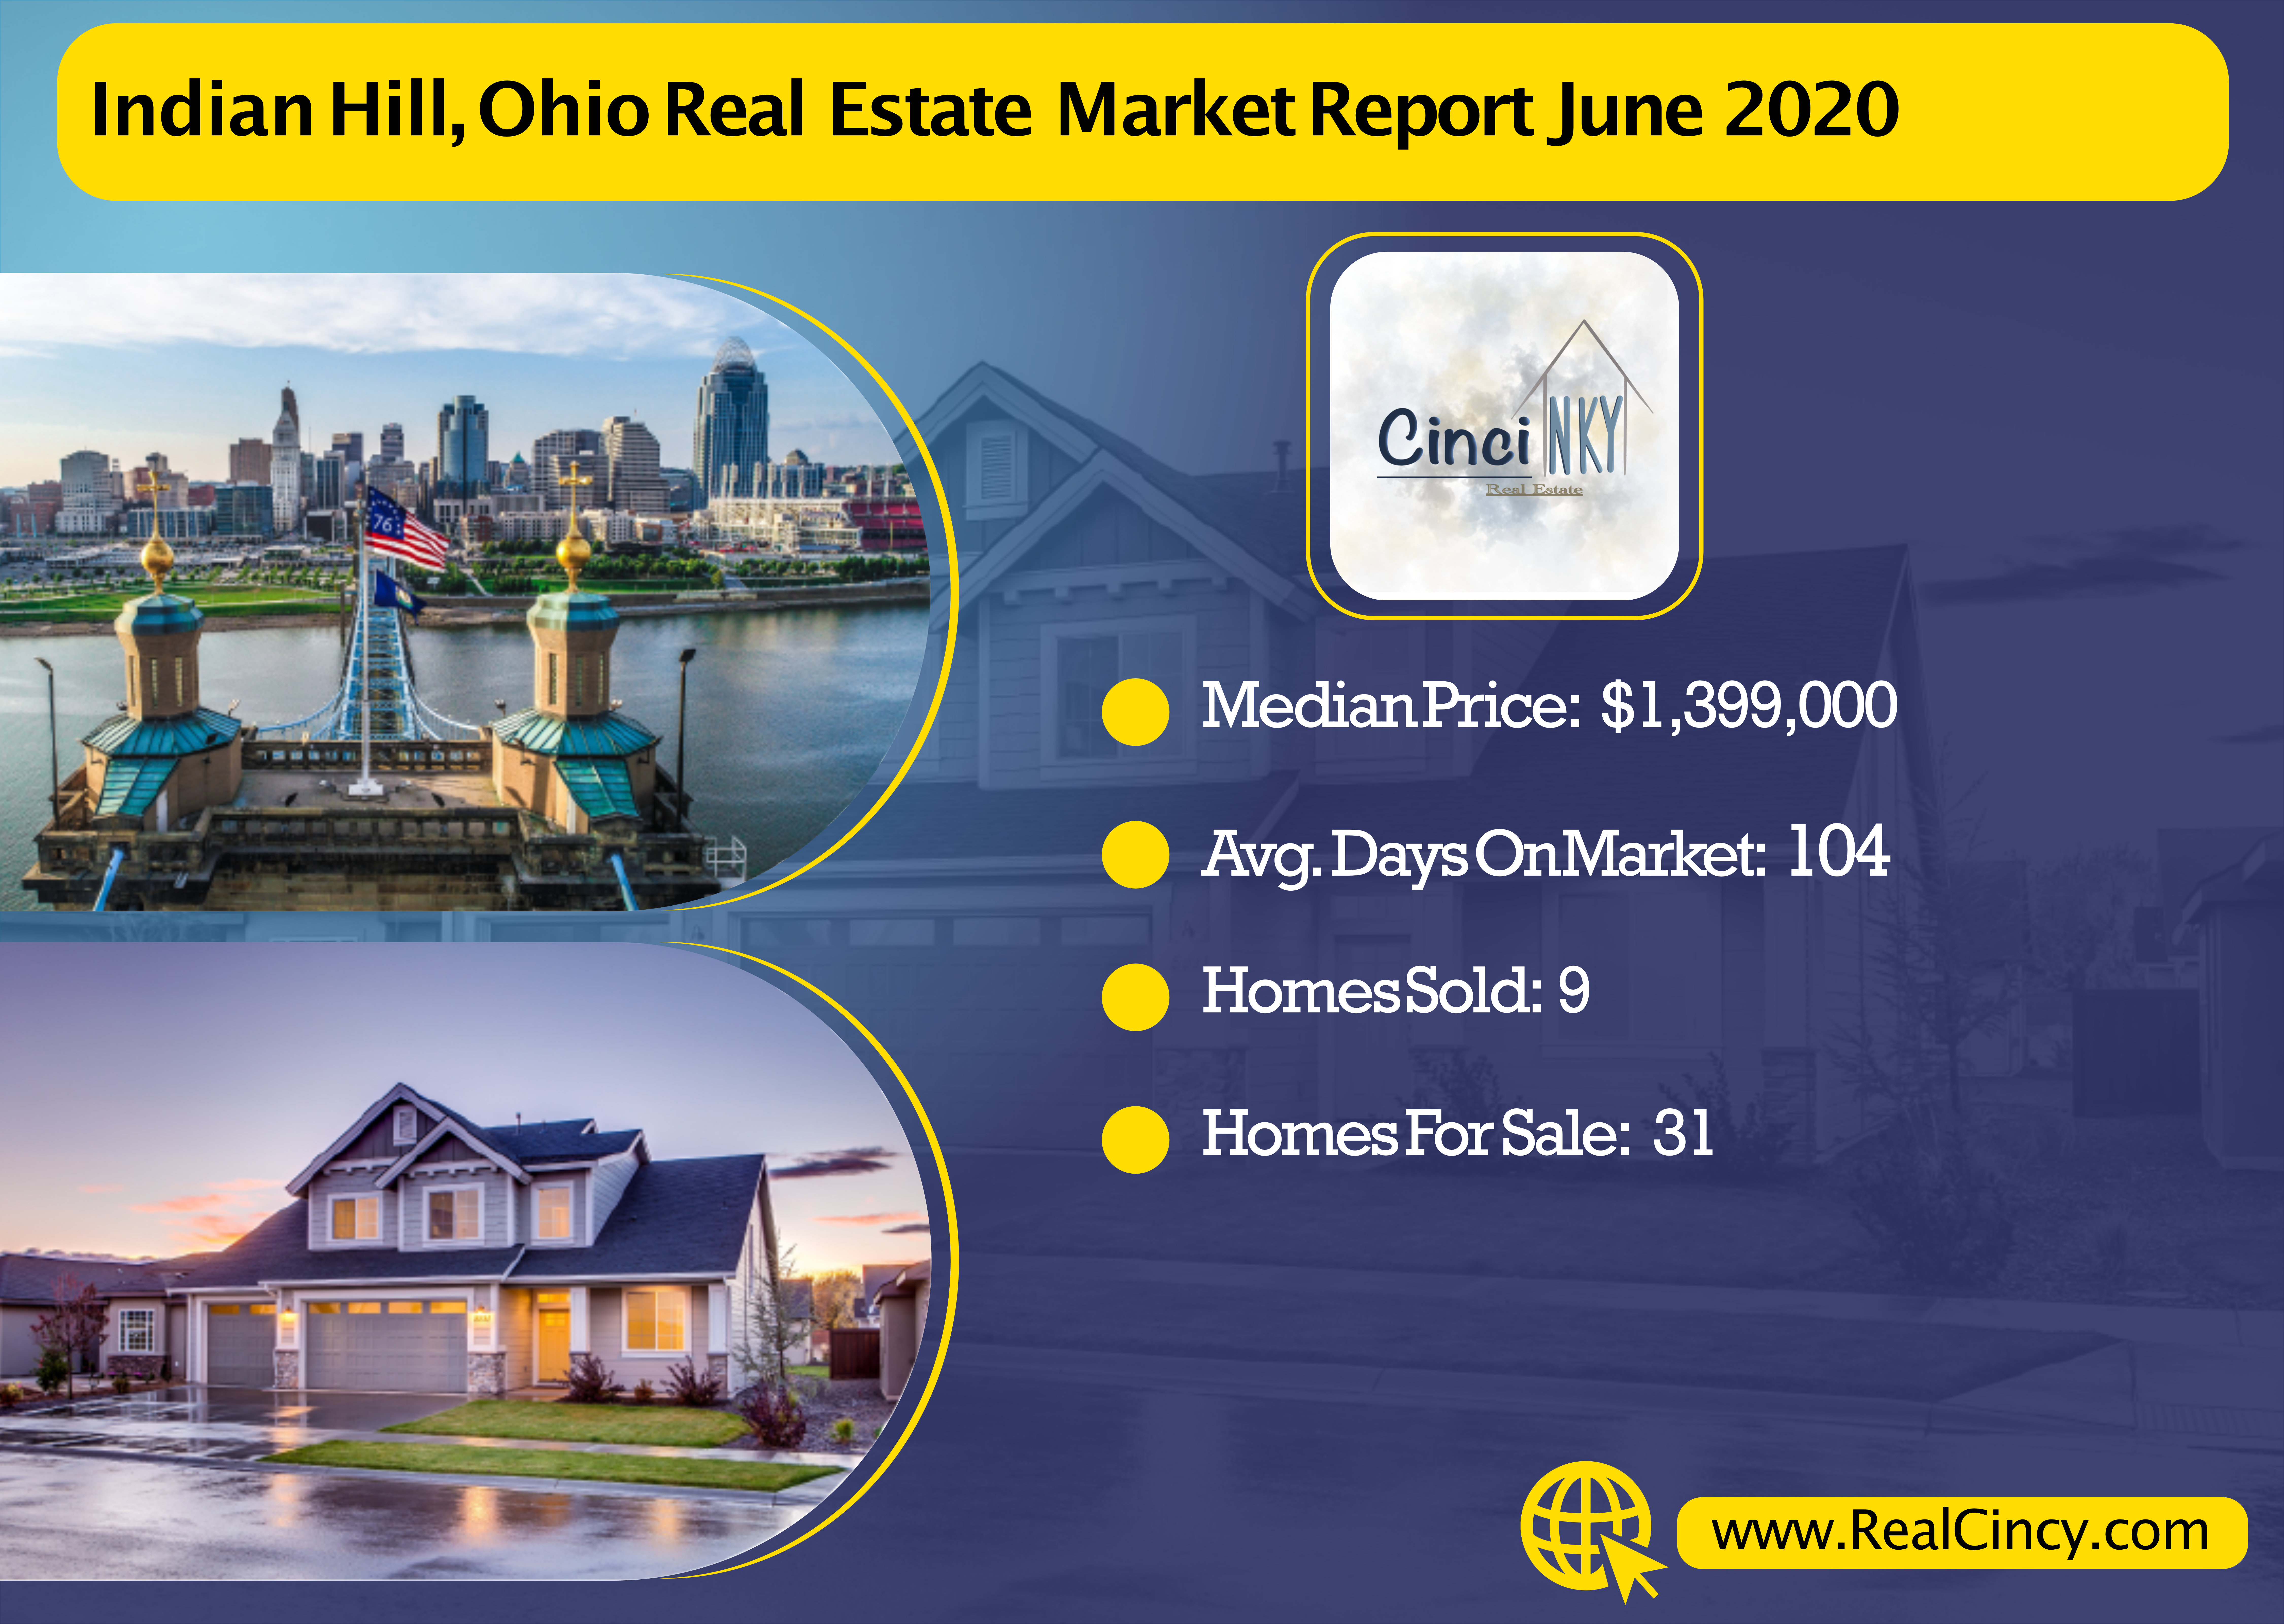 Indian Hill, Ohio June 2020 real estate market report